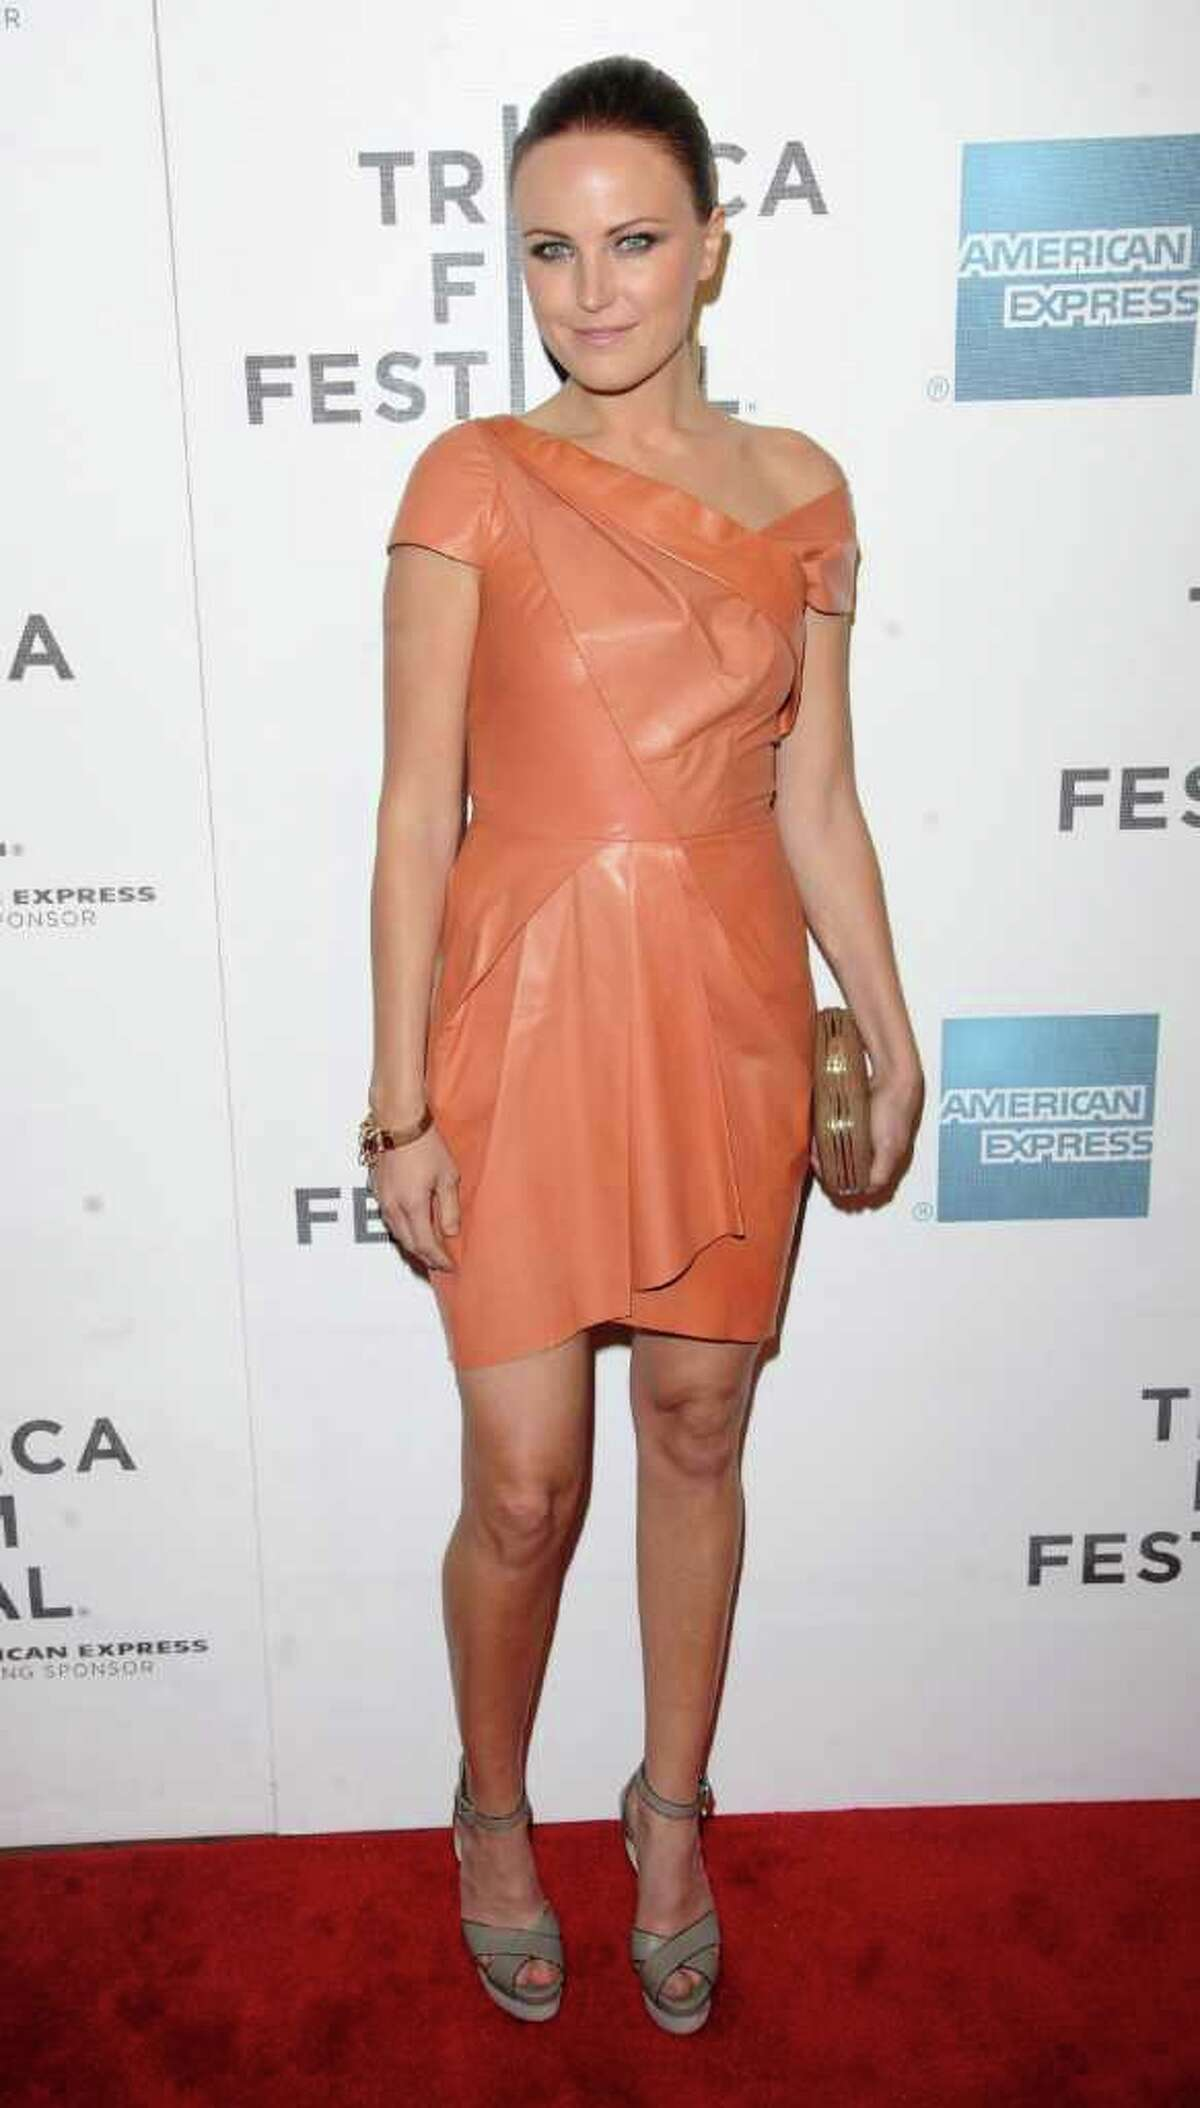 Actress Malin Akerman attends the premiere of